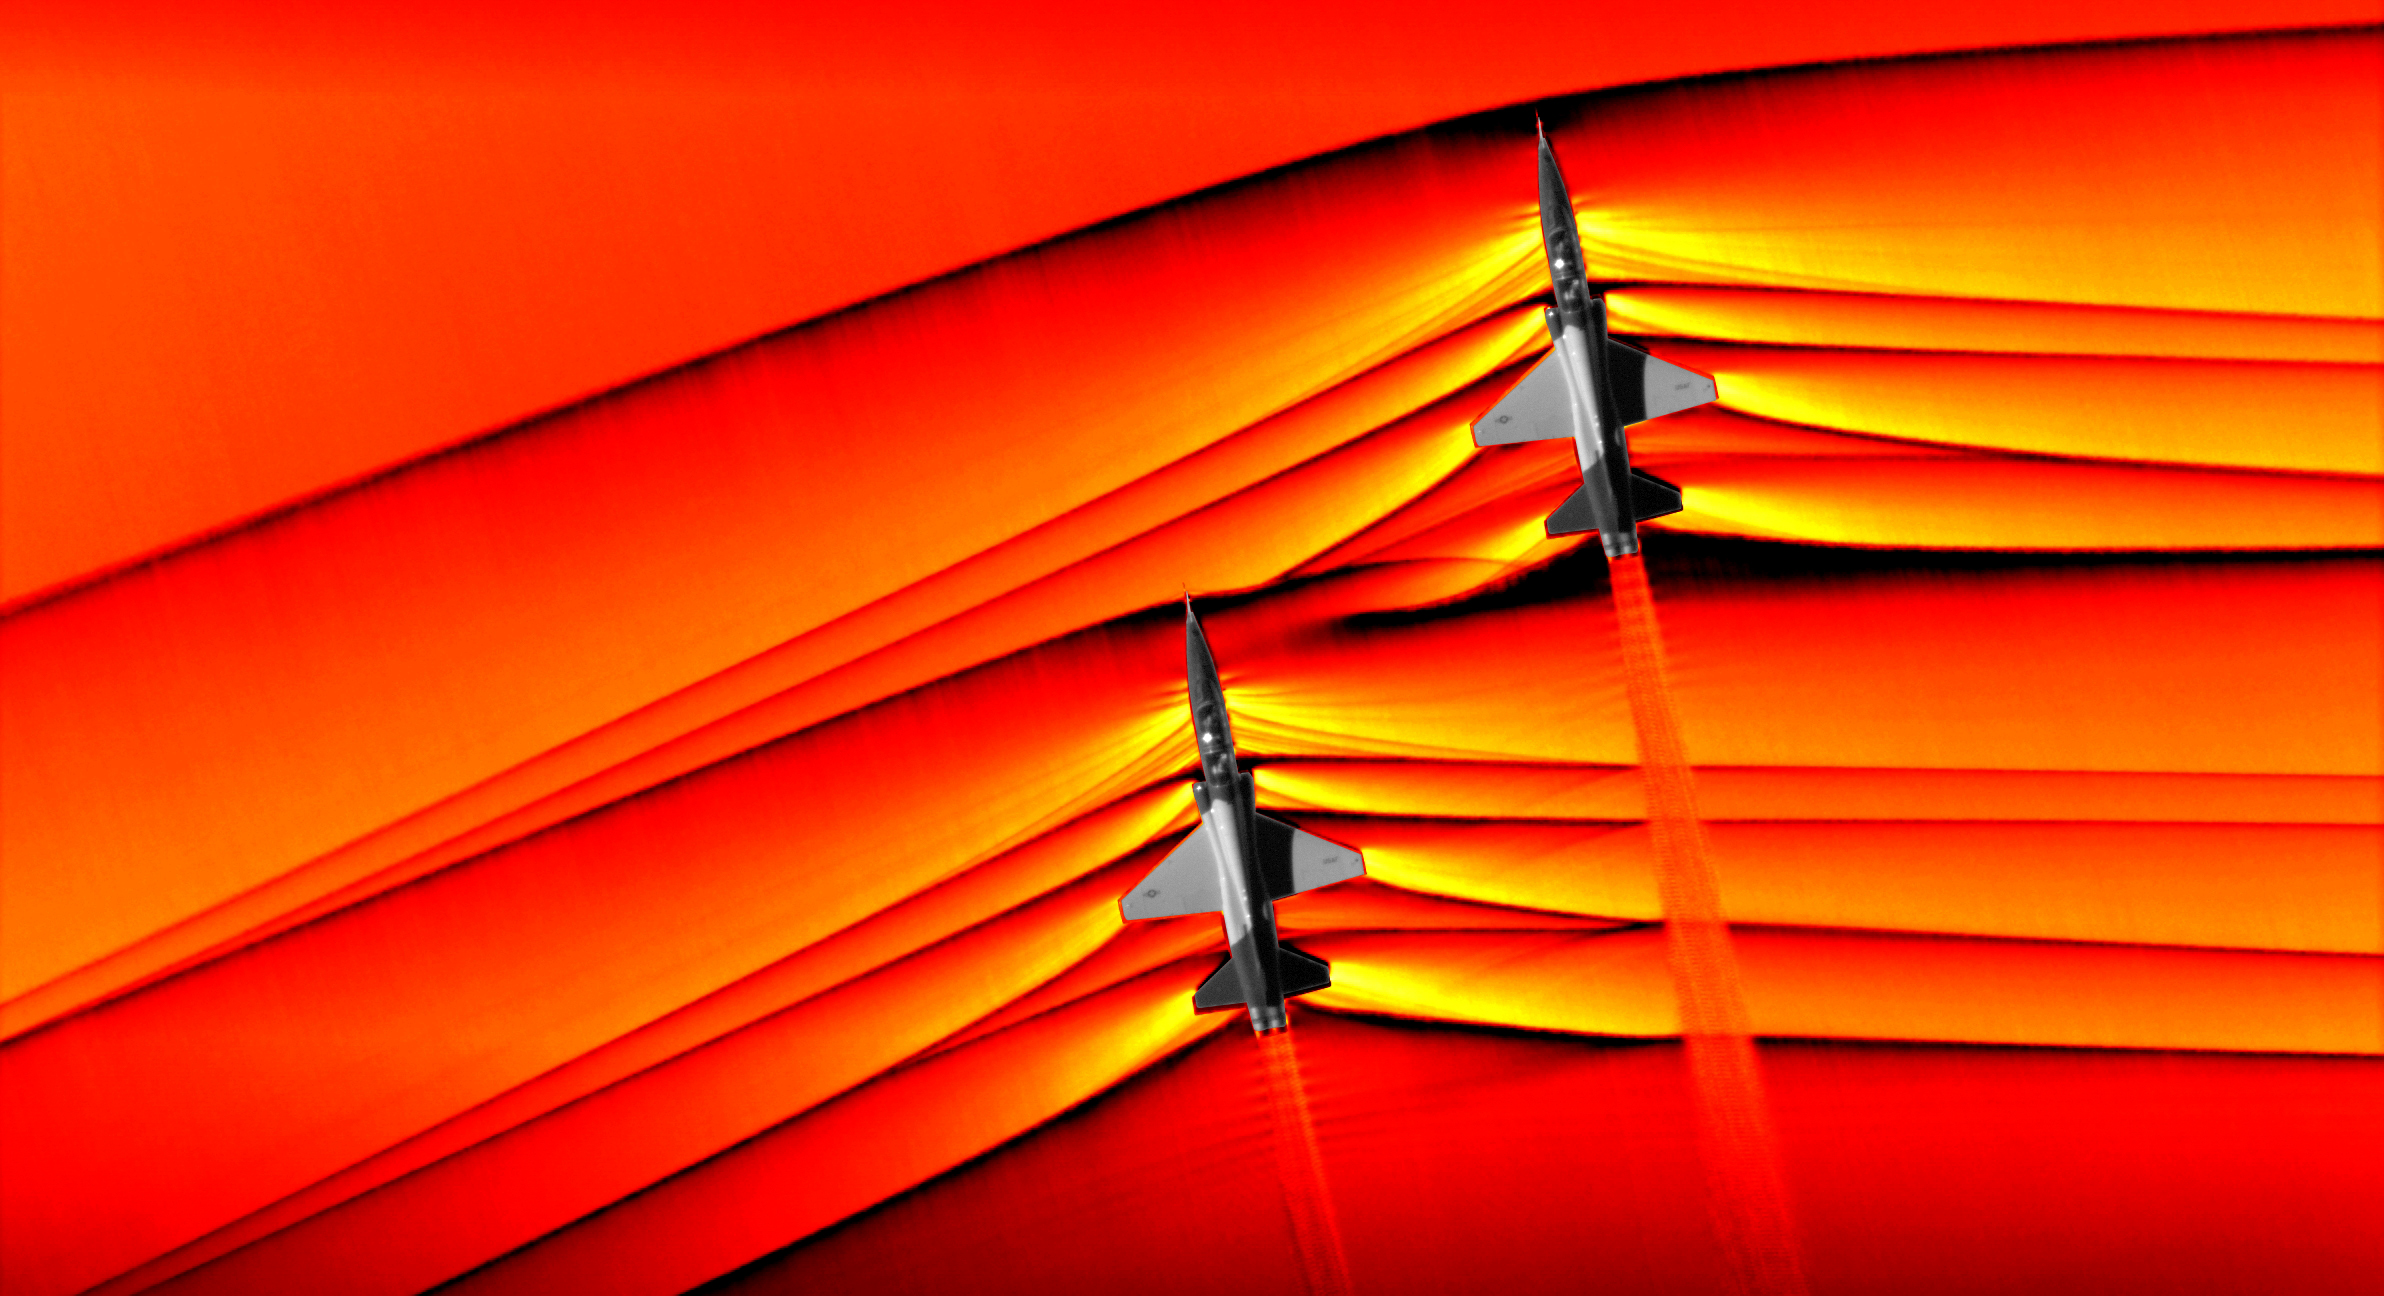 NASA Captures Supersonic Shock Interaction